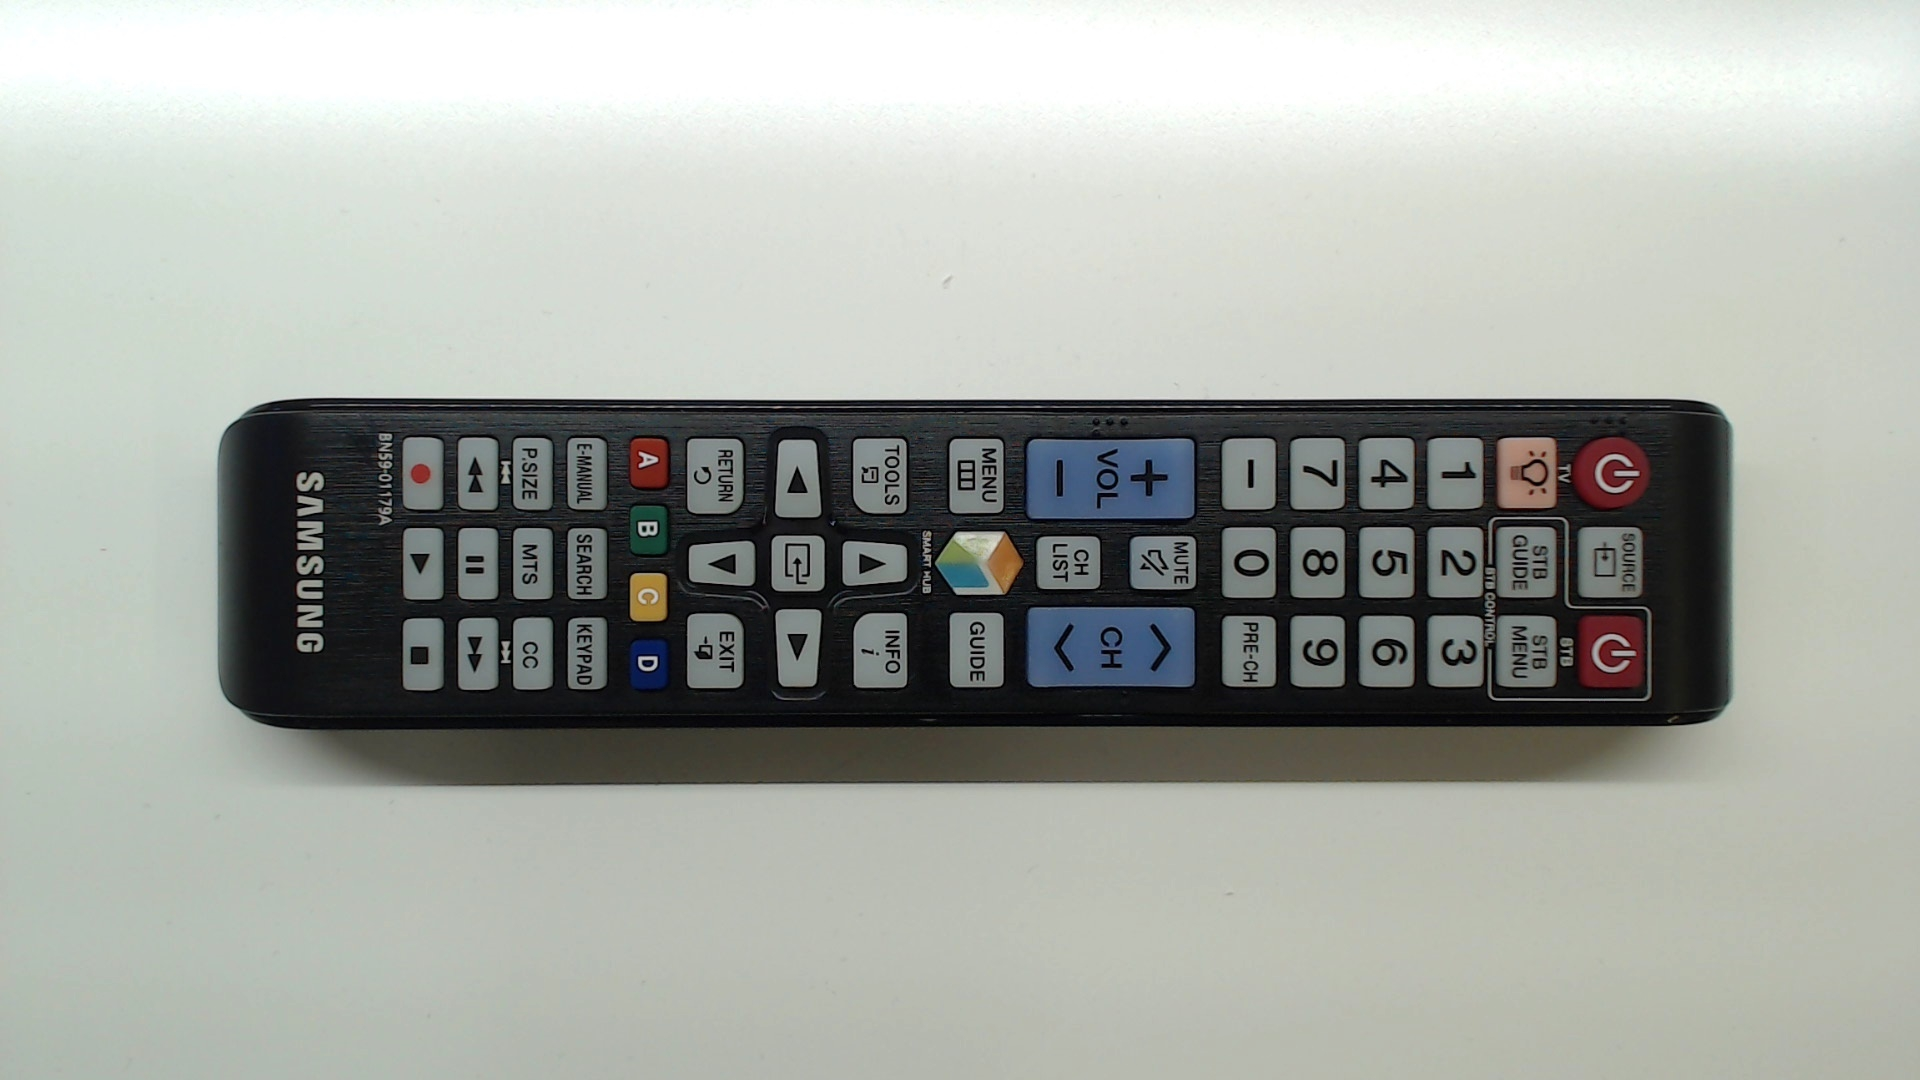 Samsung remote control BN59-01179A | TVTECHparts